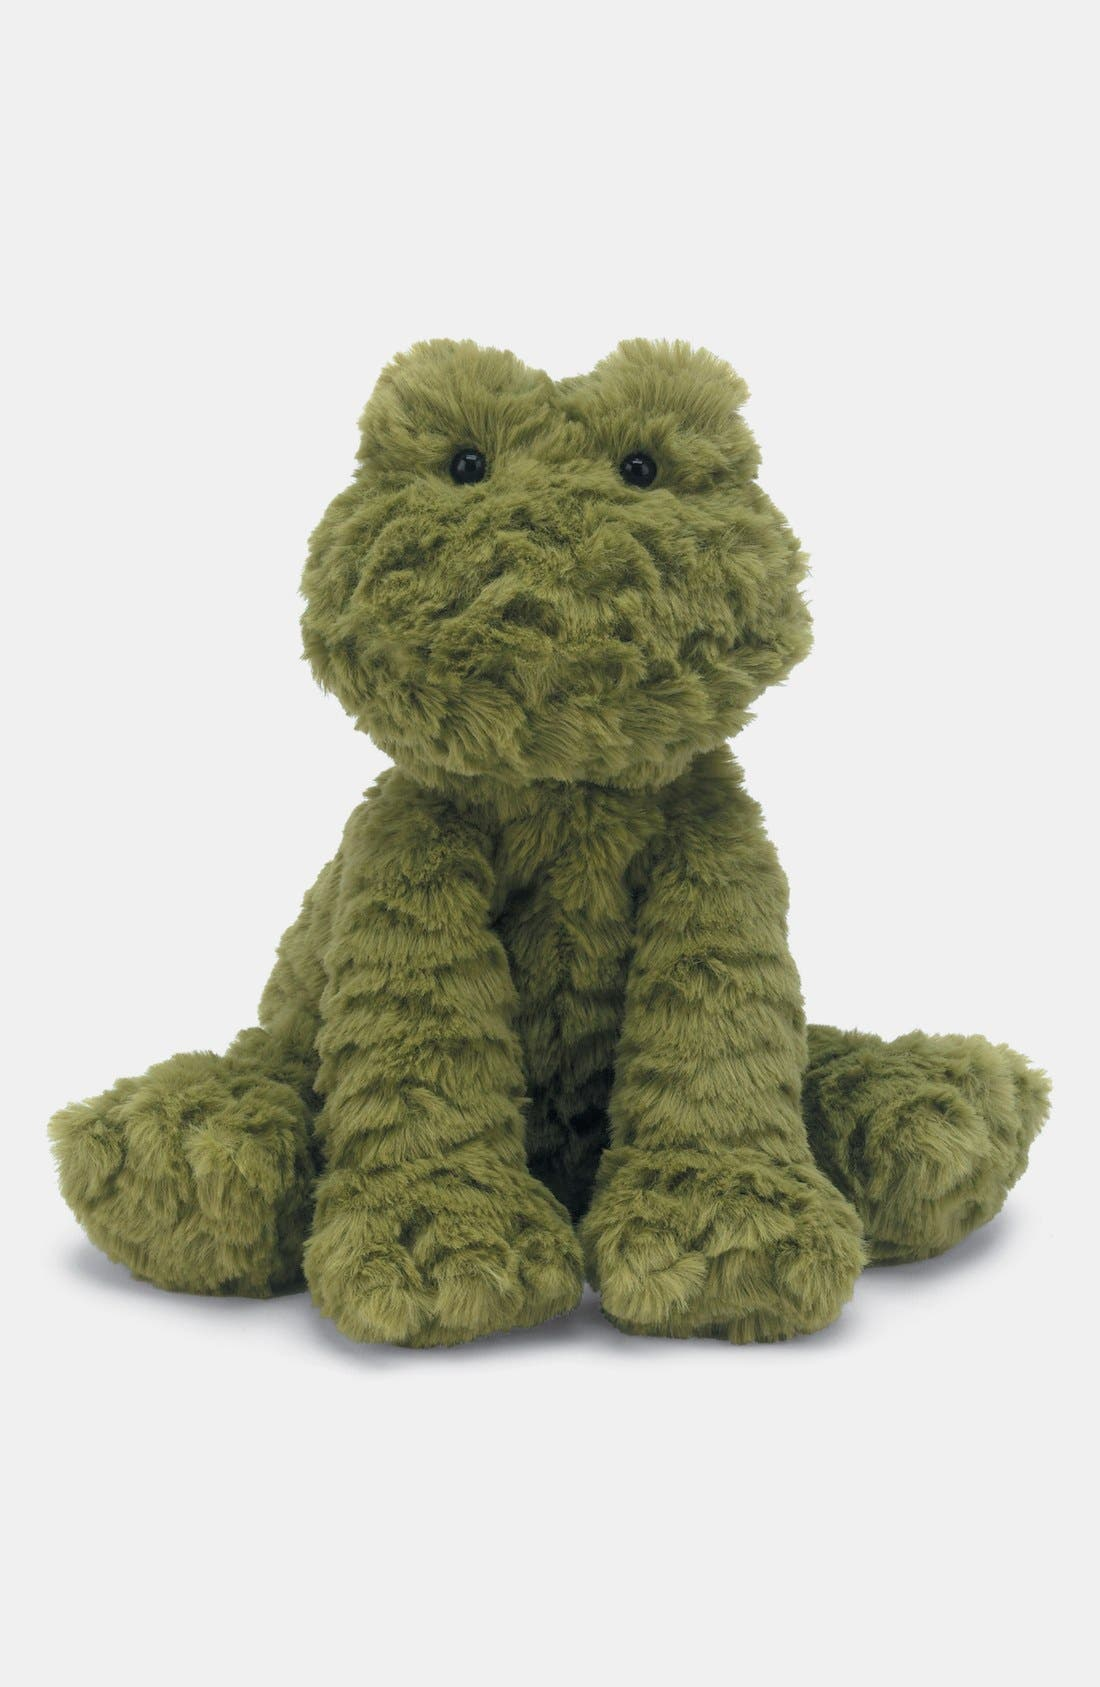 Main Image - Jellycat 'Fuddlewuddles' Frog